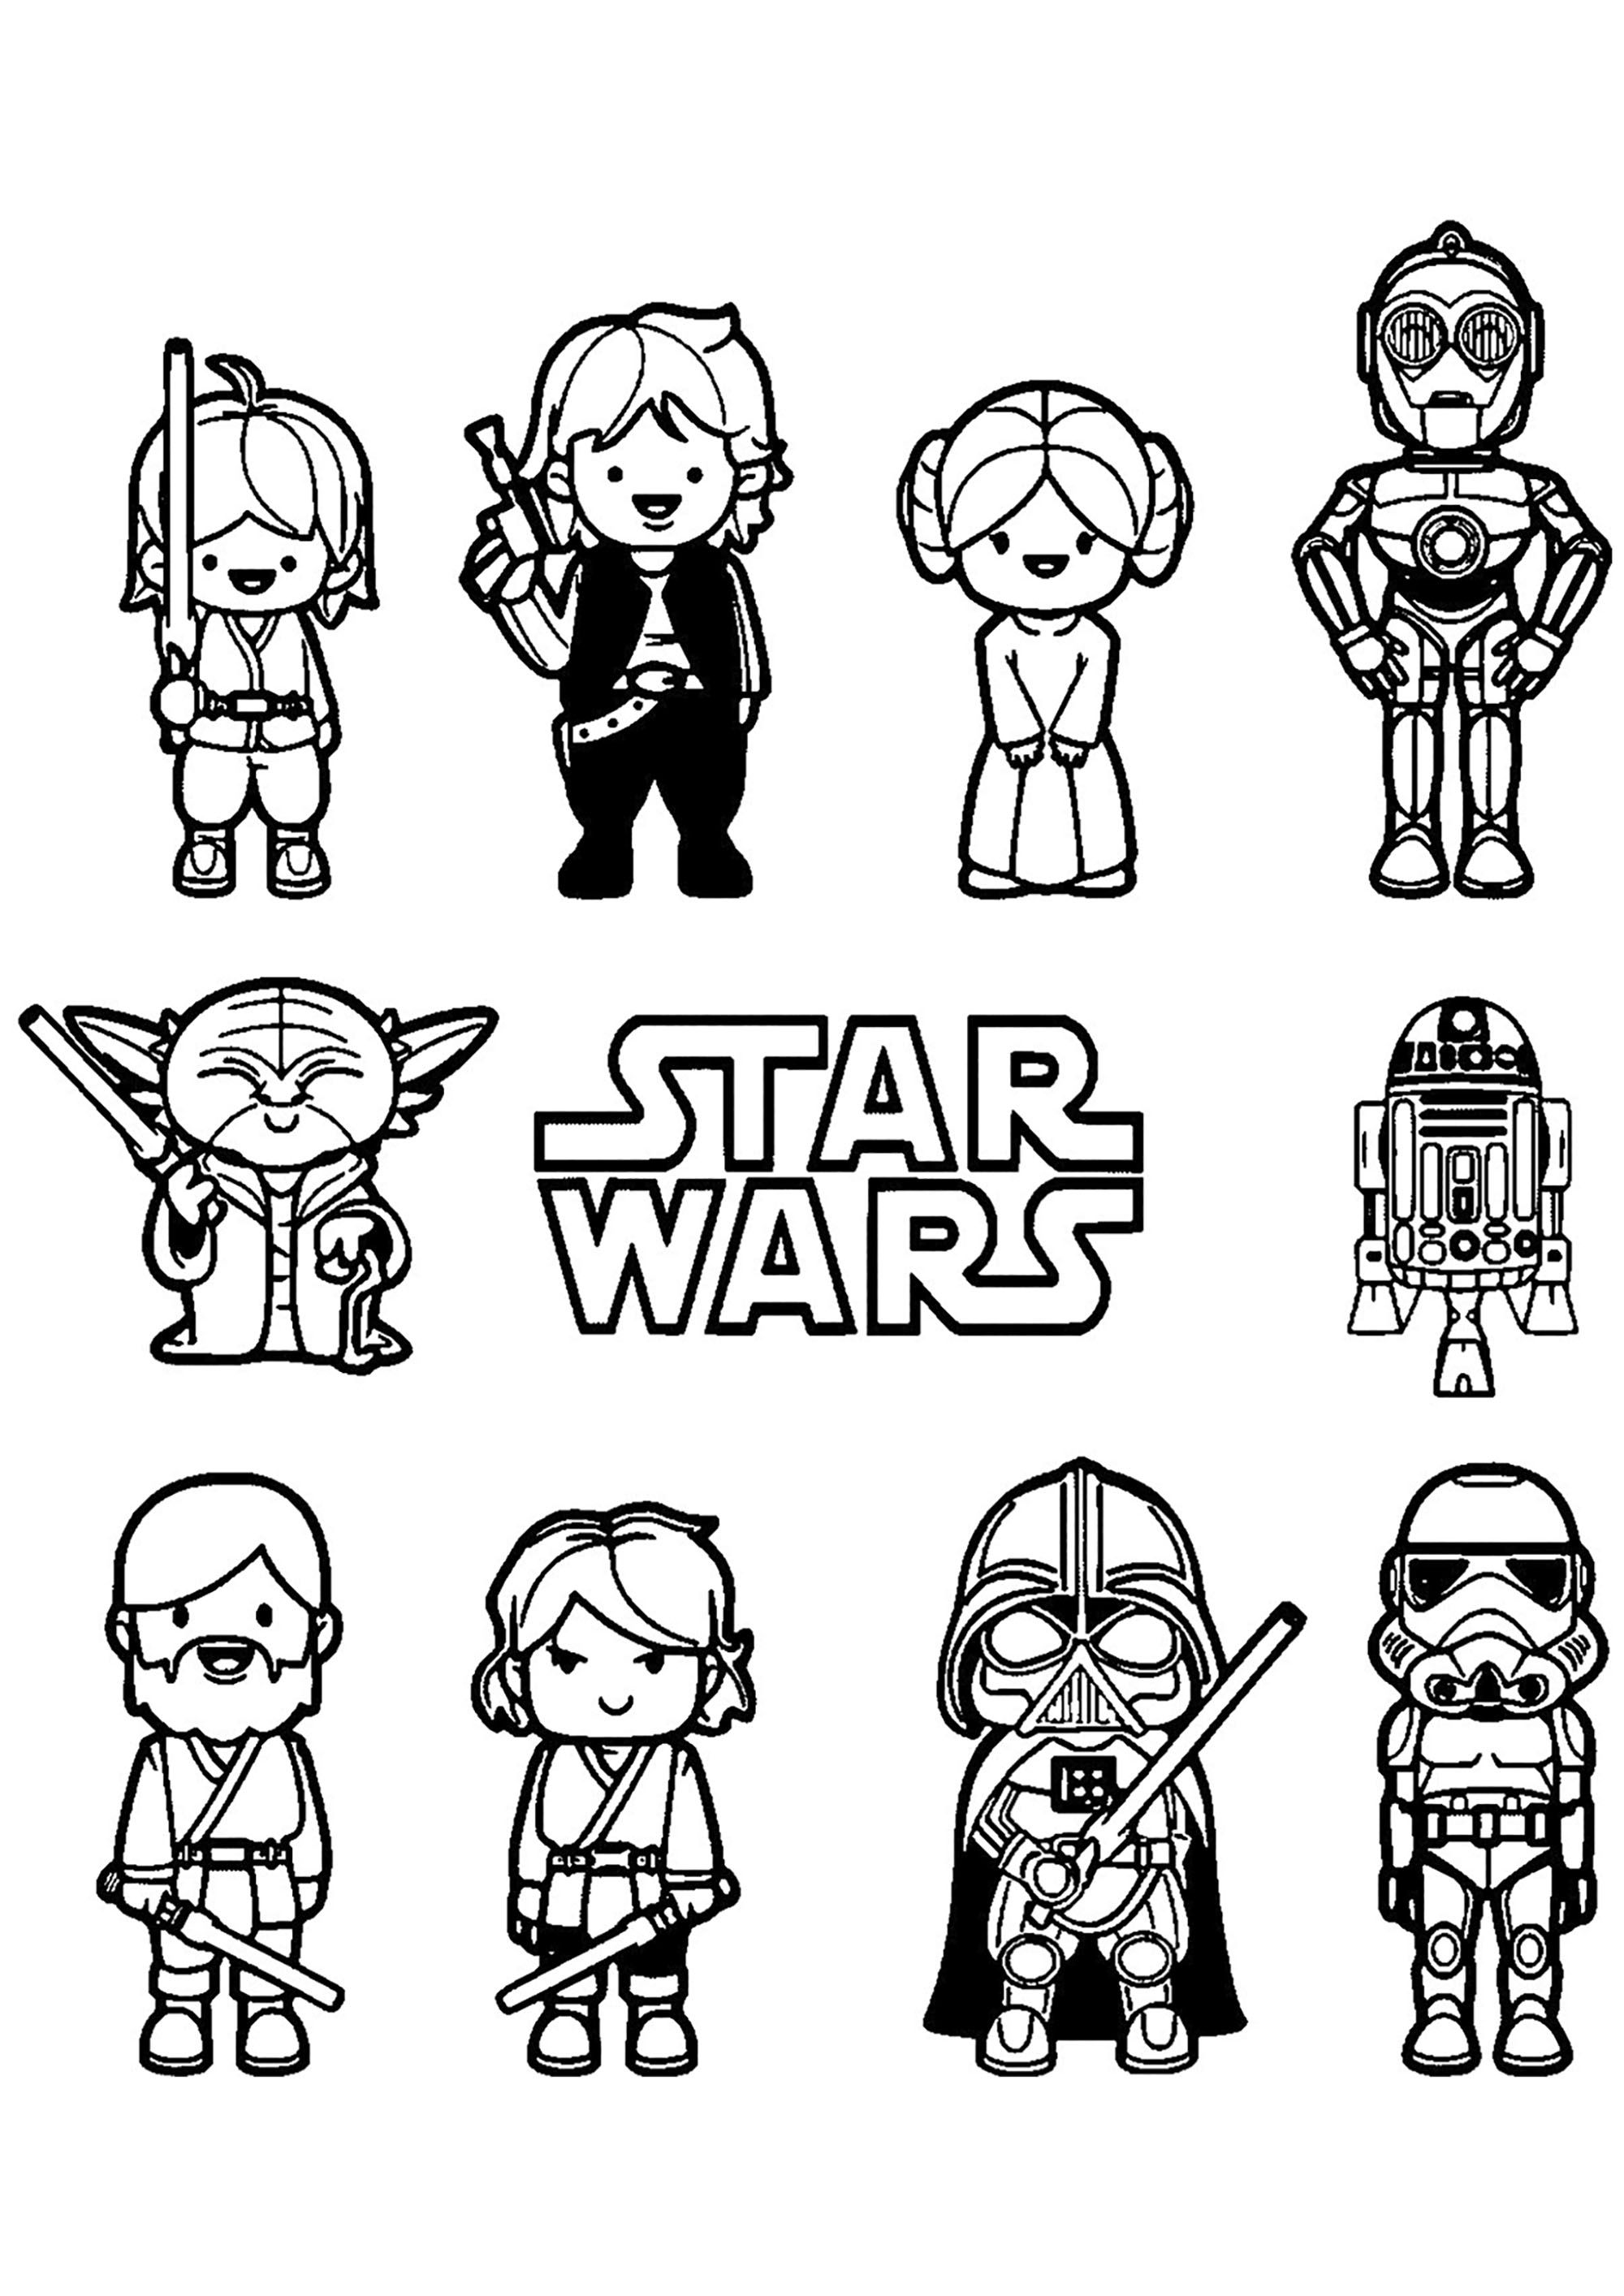 Star Wars Color Pages Coloring Pages For Children Star Wars 47058 Star Wars Coloring Book Star Wars Coloring Sheet Star Wars Cartoon